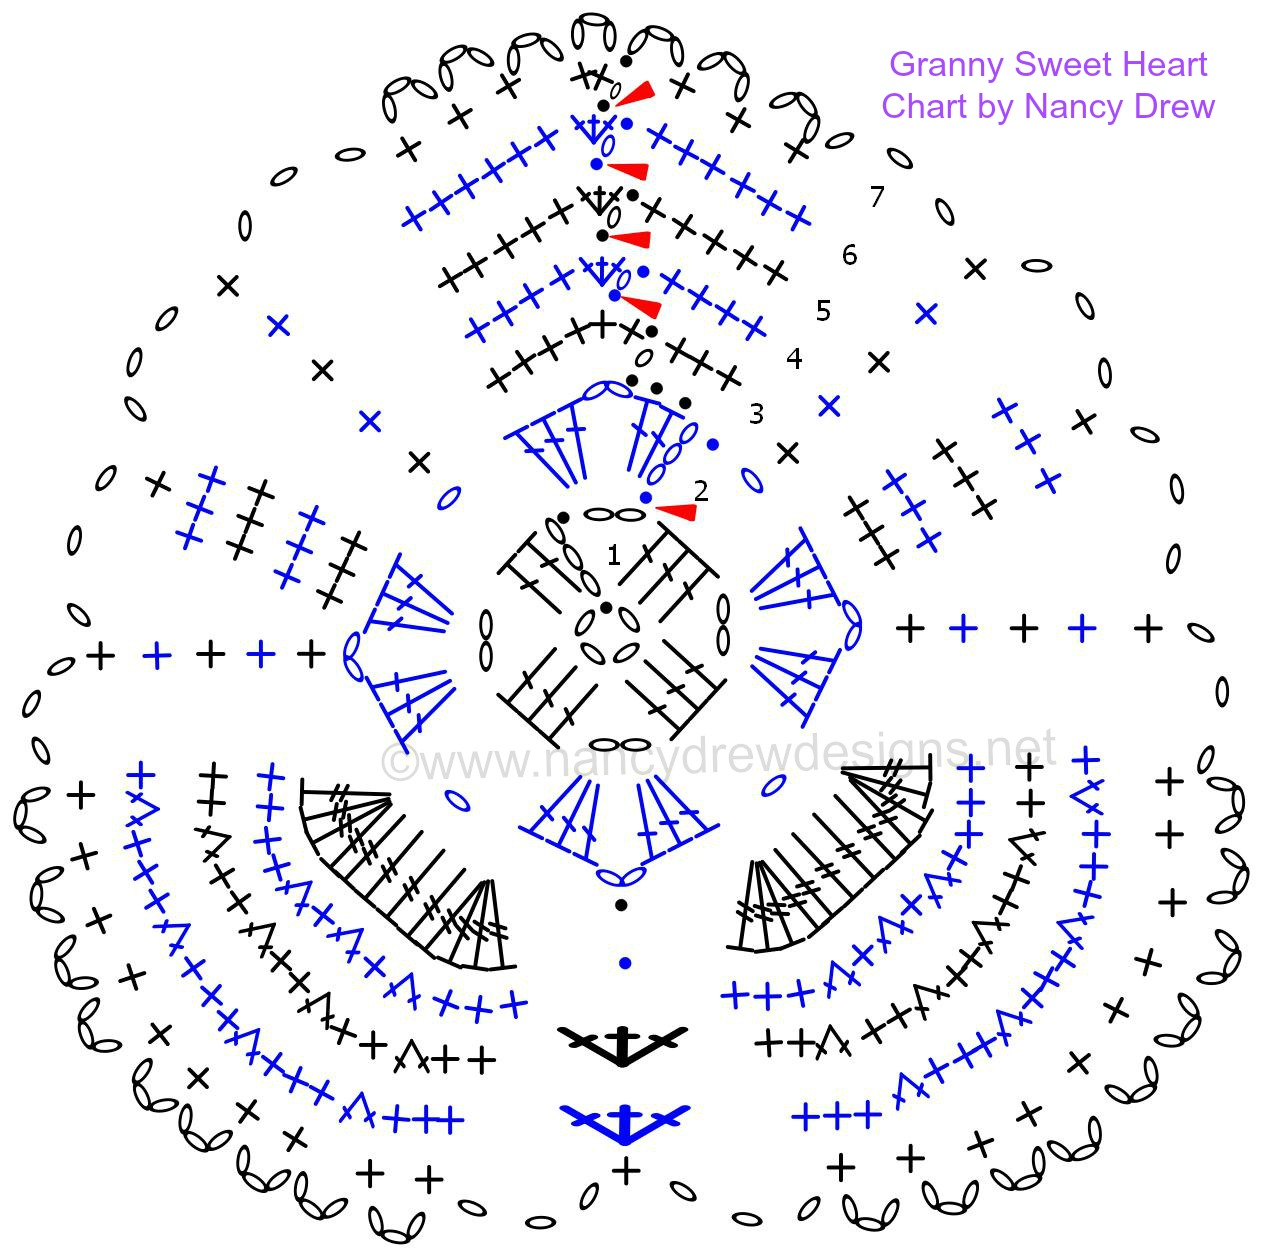 Nancy Drew Designs Diagram Crochet Patterns Crocheted Love Copy Chart For Granny Sweet Hearts